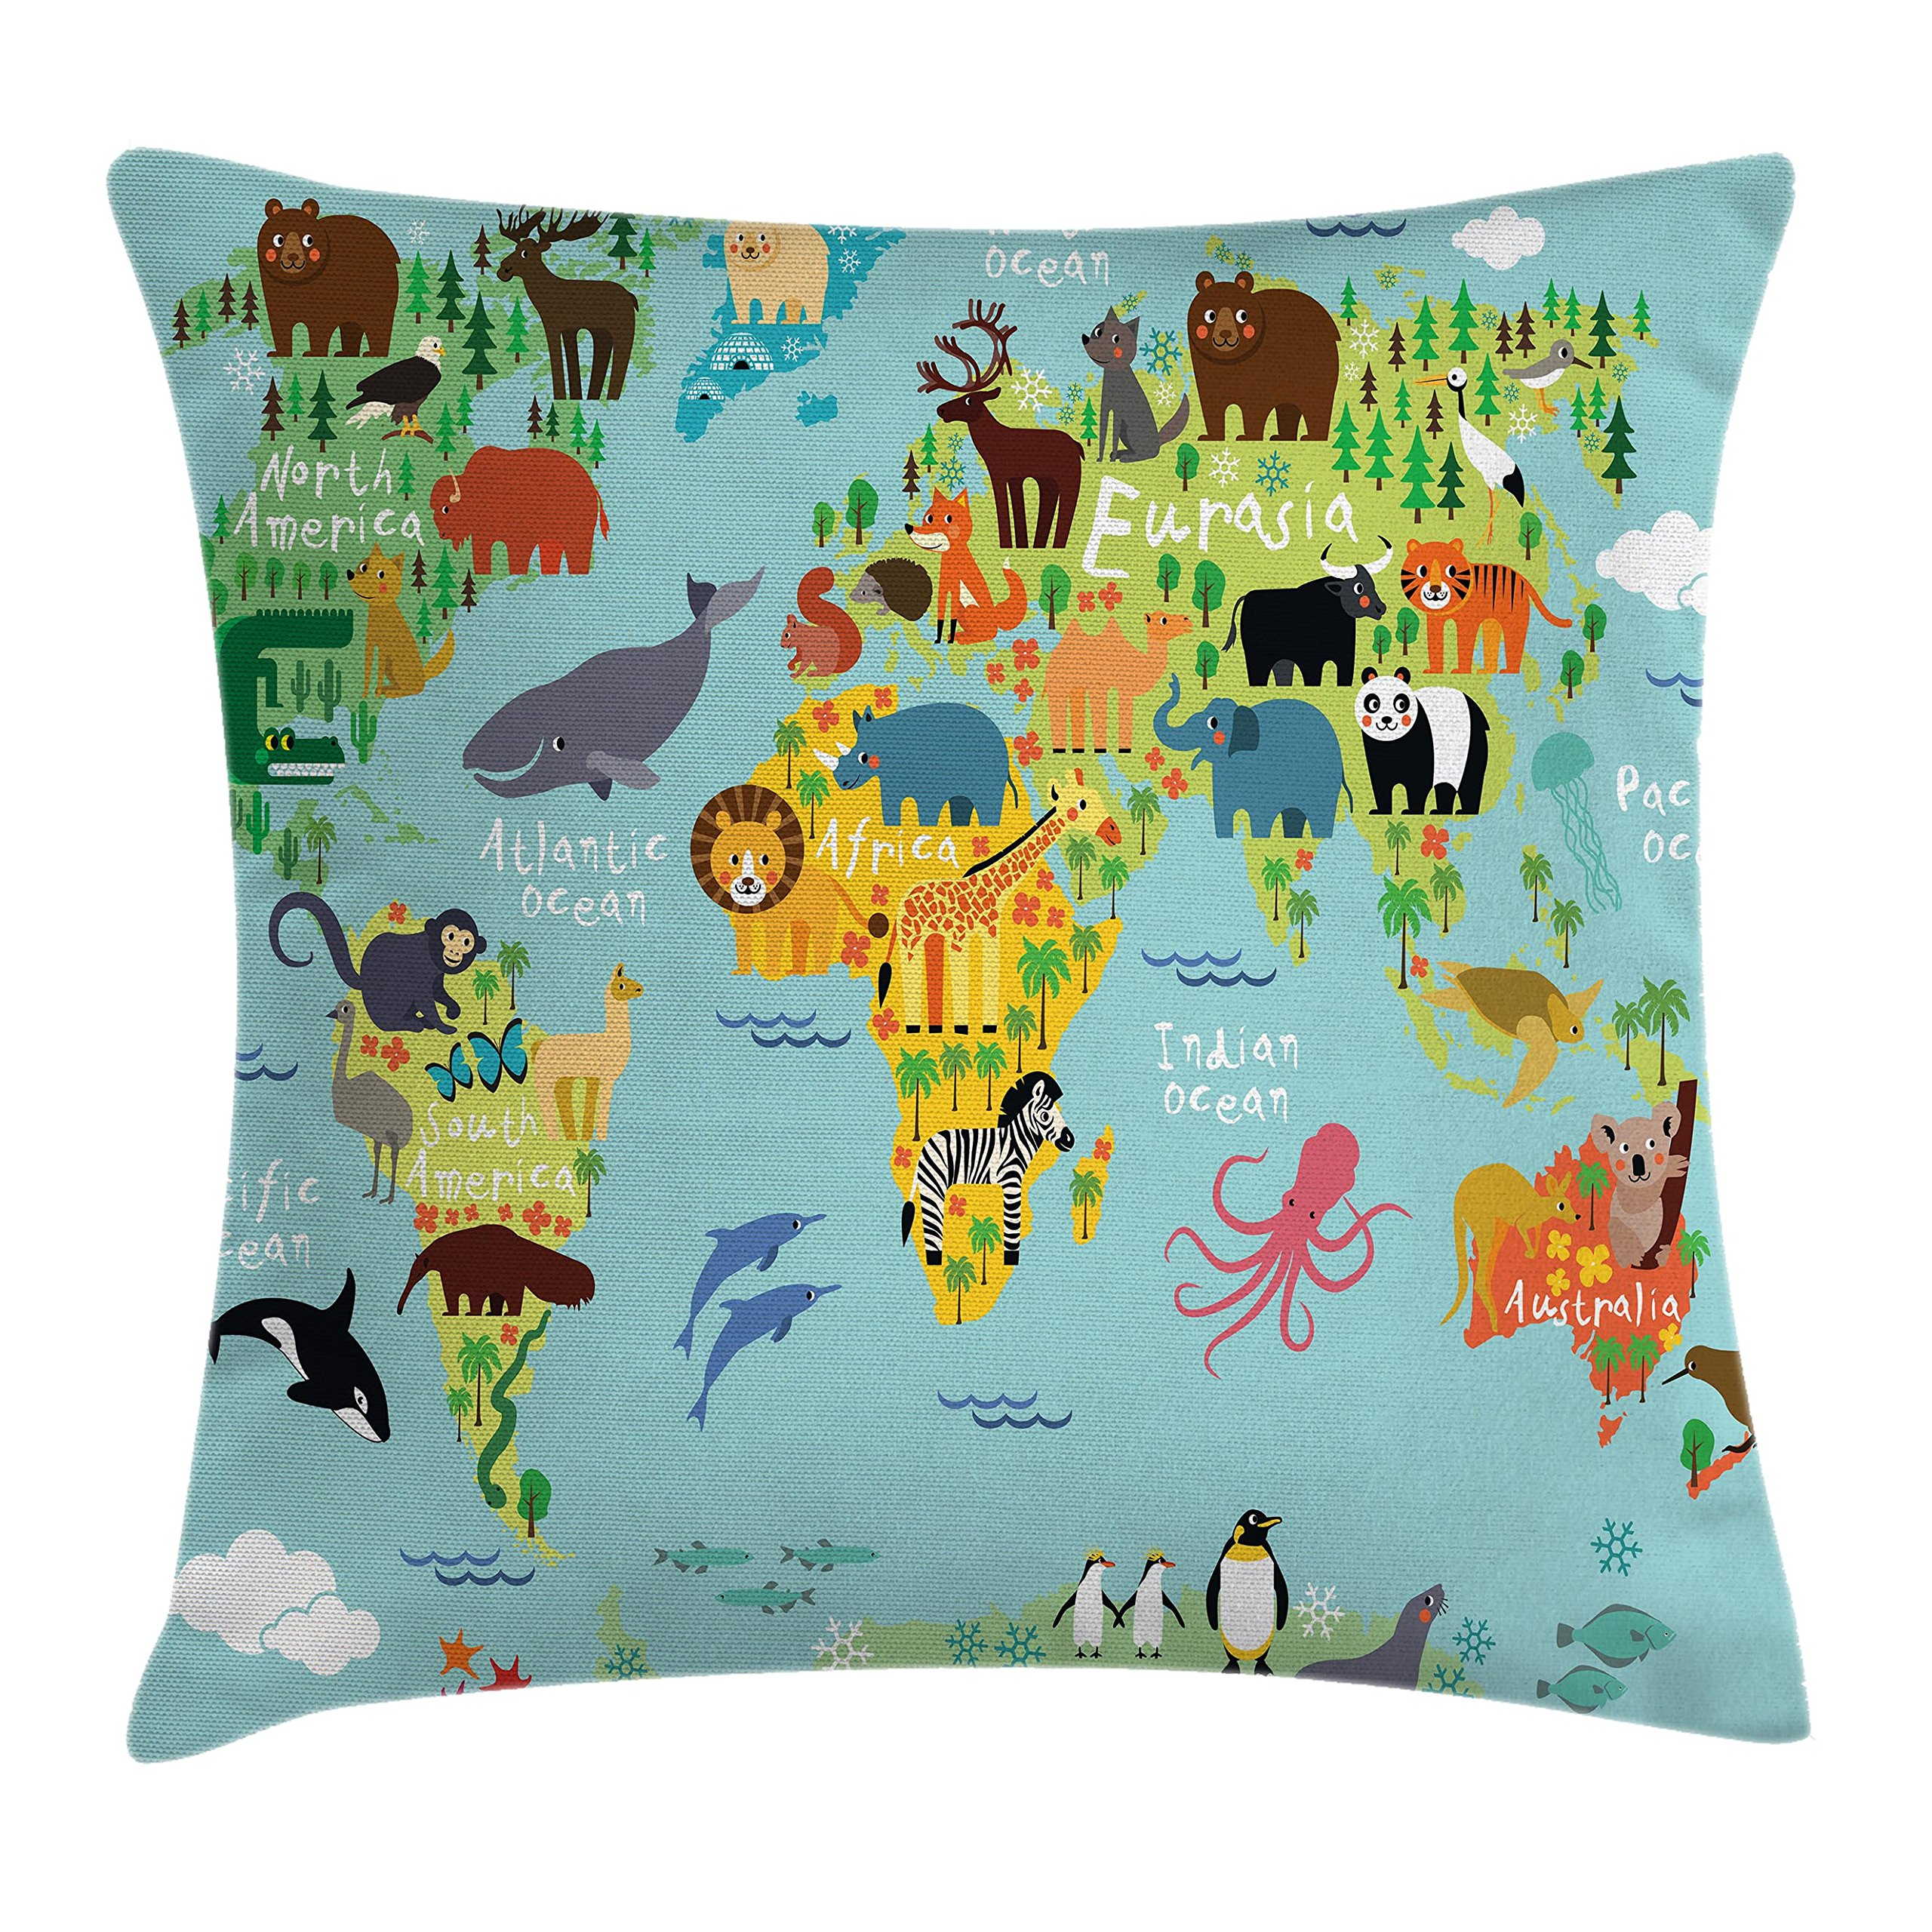 Ambesonne Wanderlust Throw Pillow Cushion Cover, Animal Map of the World for Children and Kids Cartoon Mountains Forests, Decorative Square Accent Pillow Case, 24 X 24 Inches, Aqua Blue and White